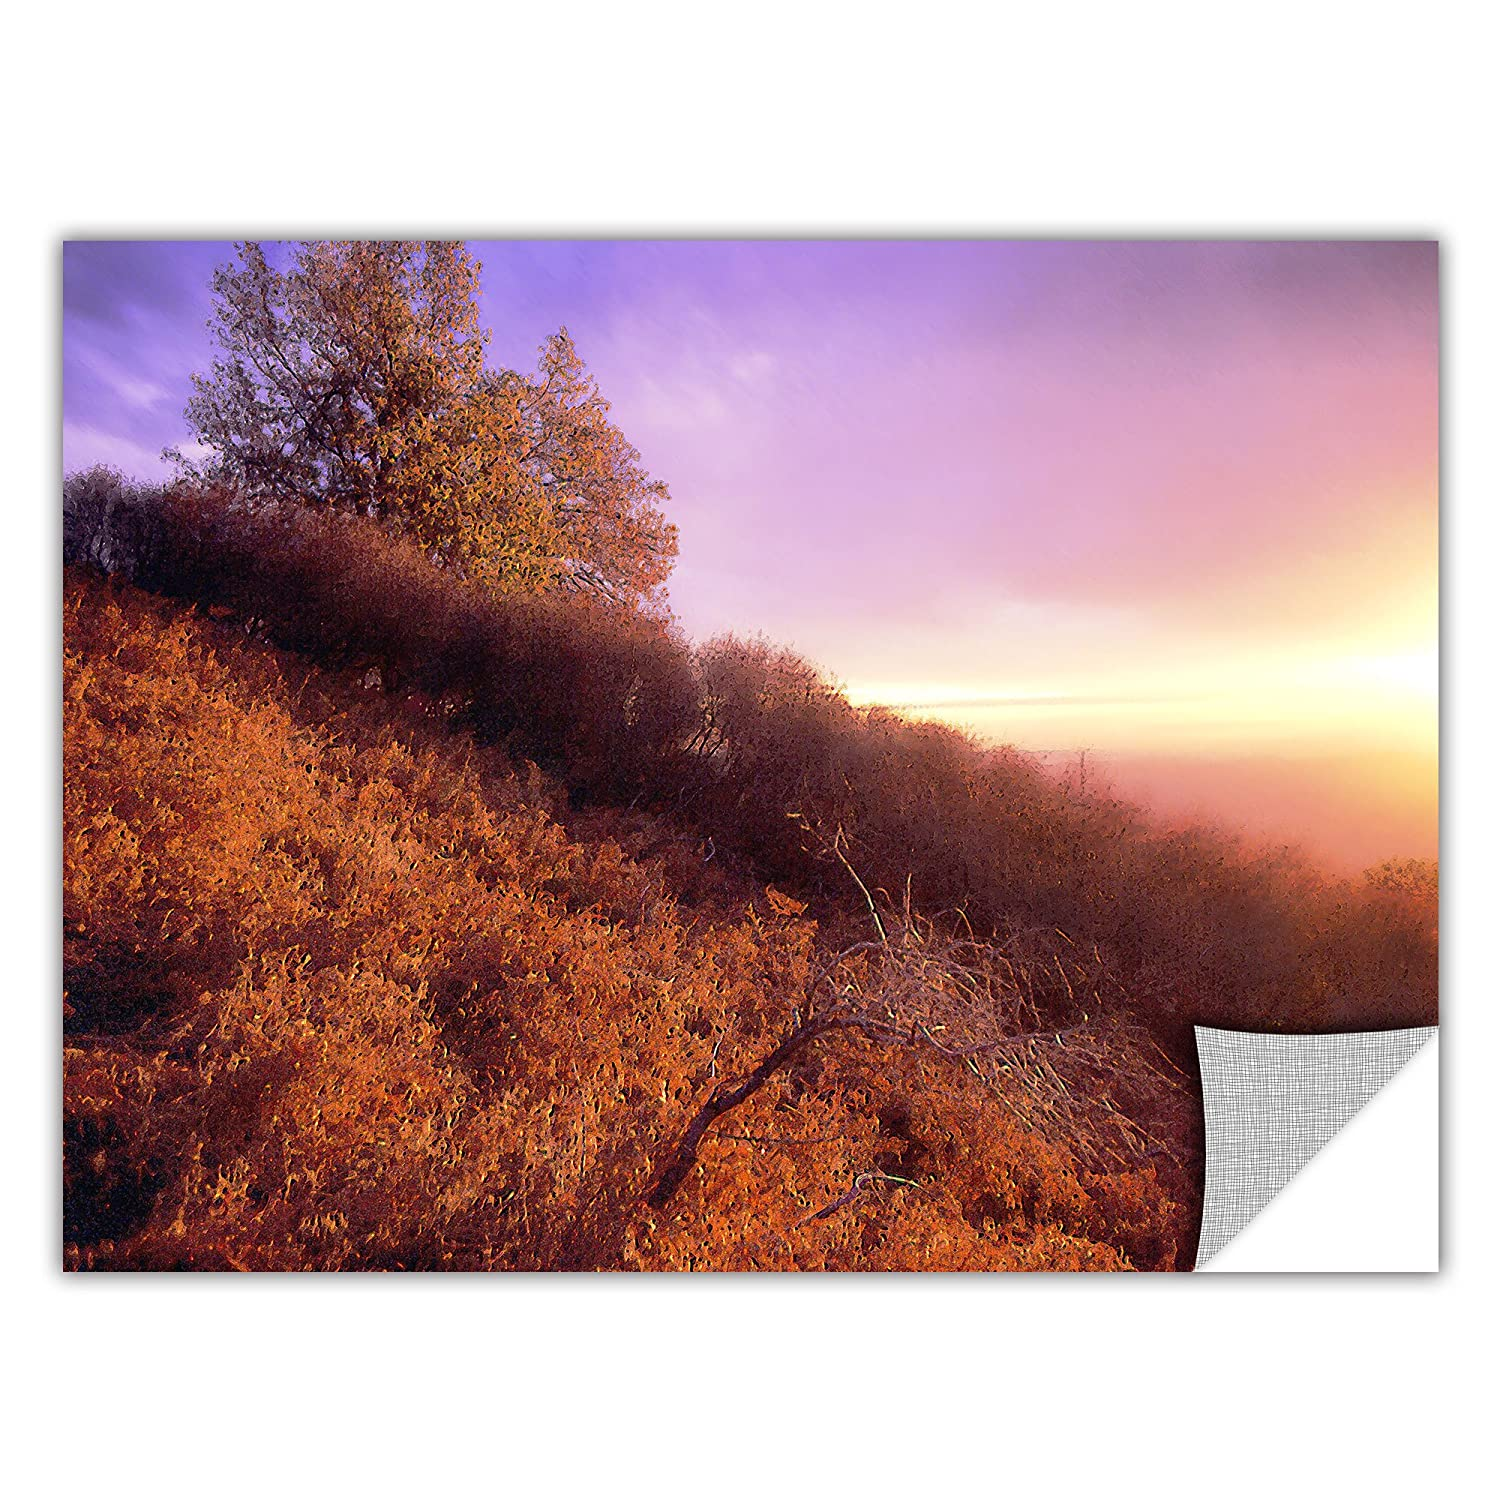 18 by 24-Inch ArtWall Dean Uhlinger Fire Light Removable Graphic Wall Art